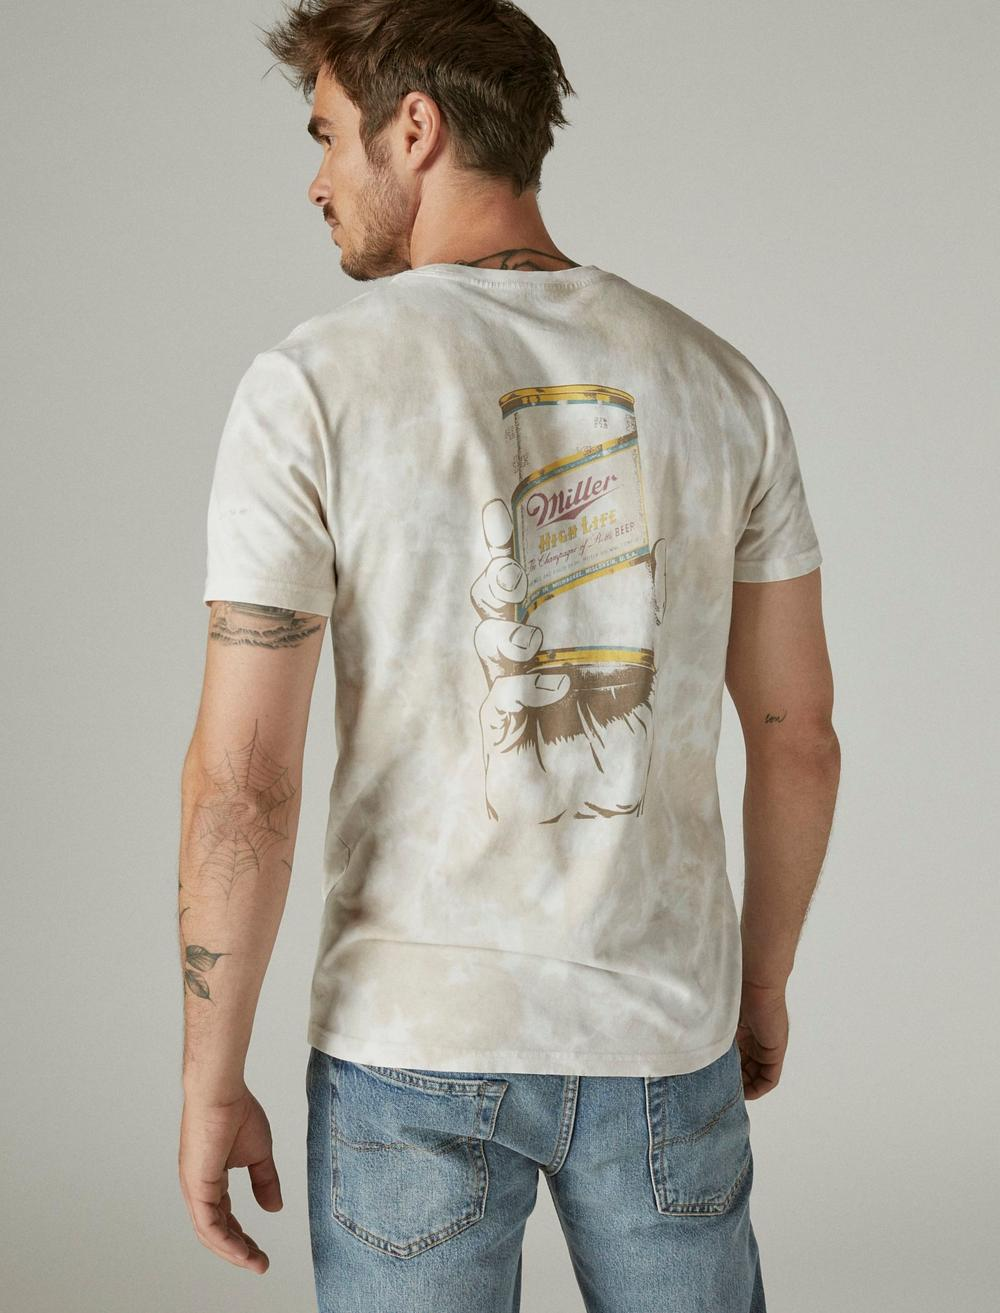 MILLER HIGH LIFE GRAPHIC TEE, image 4